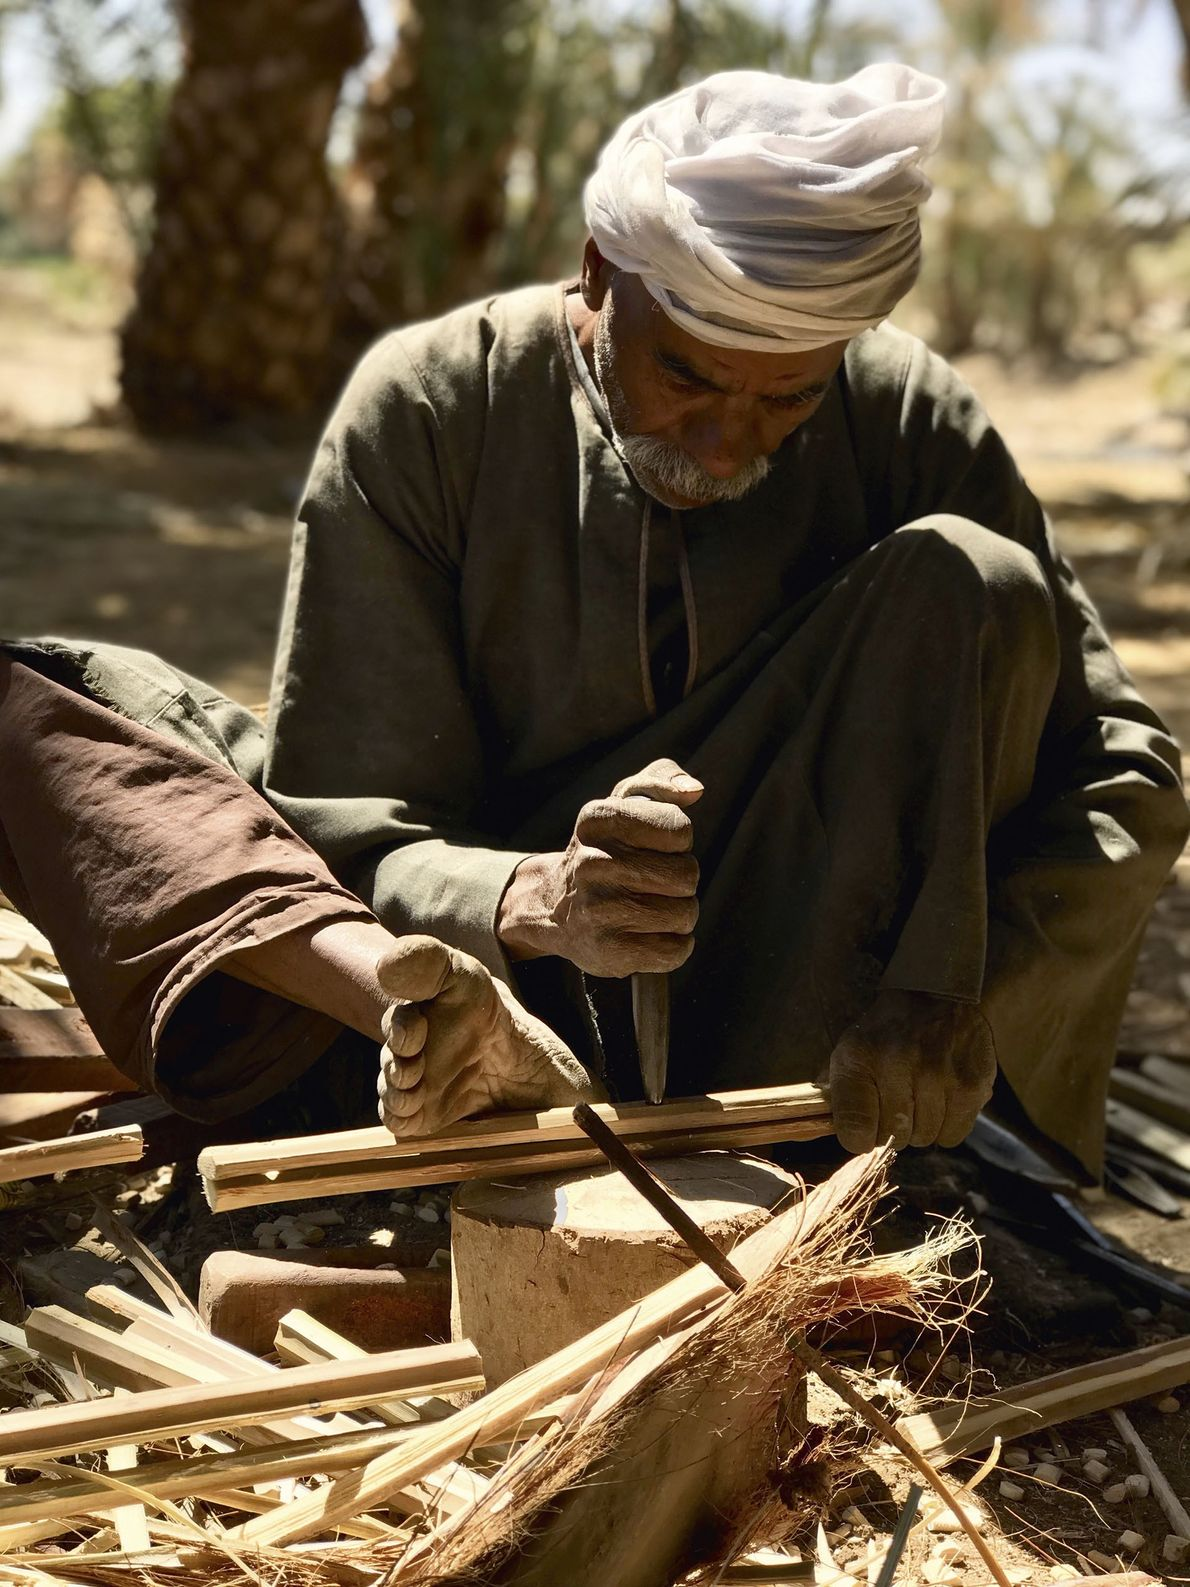 Mohammed Taha making crates from the wood of date palms, Farez.